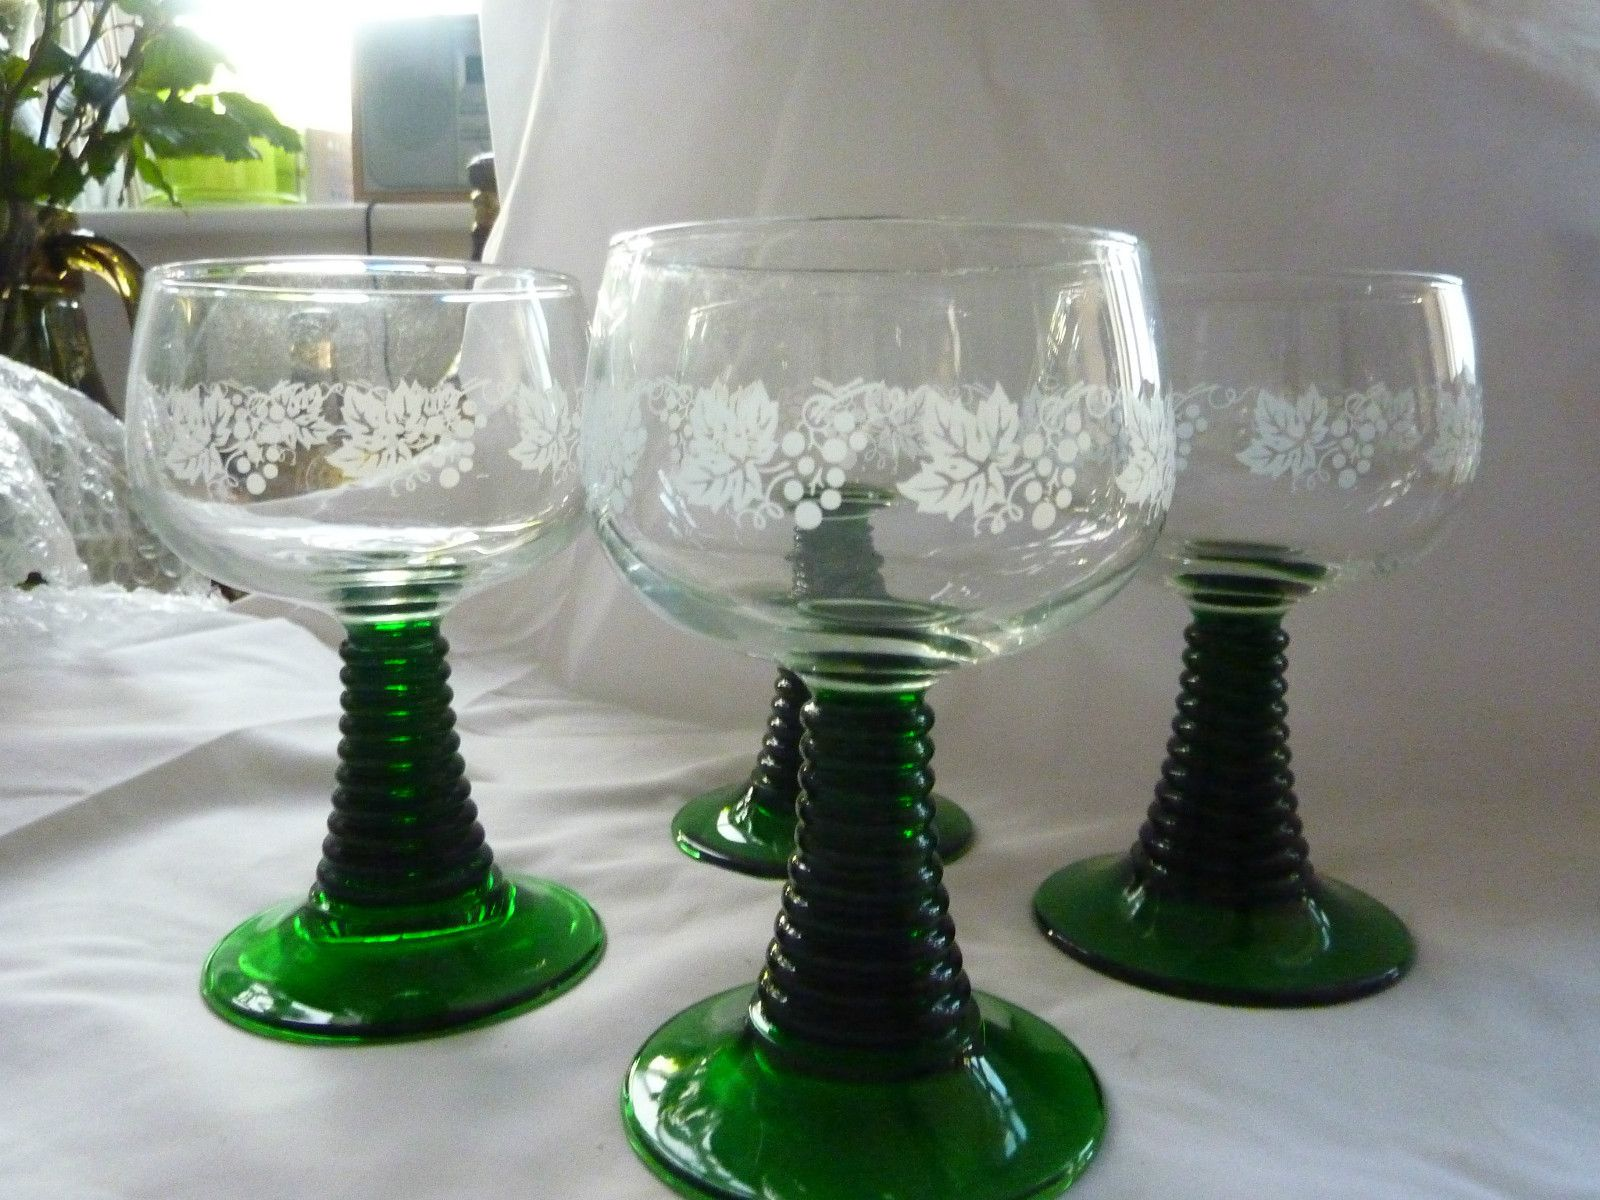 vintage luminarc wine glasses green twisted stem and white etched grapes lea whatever you. Black Bedroom Furniture Sets. Home Design Ideas